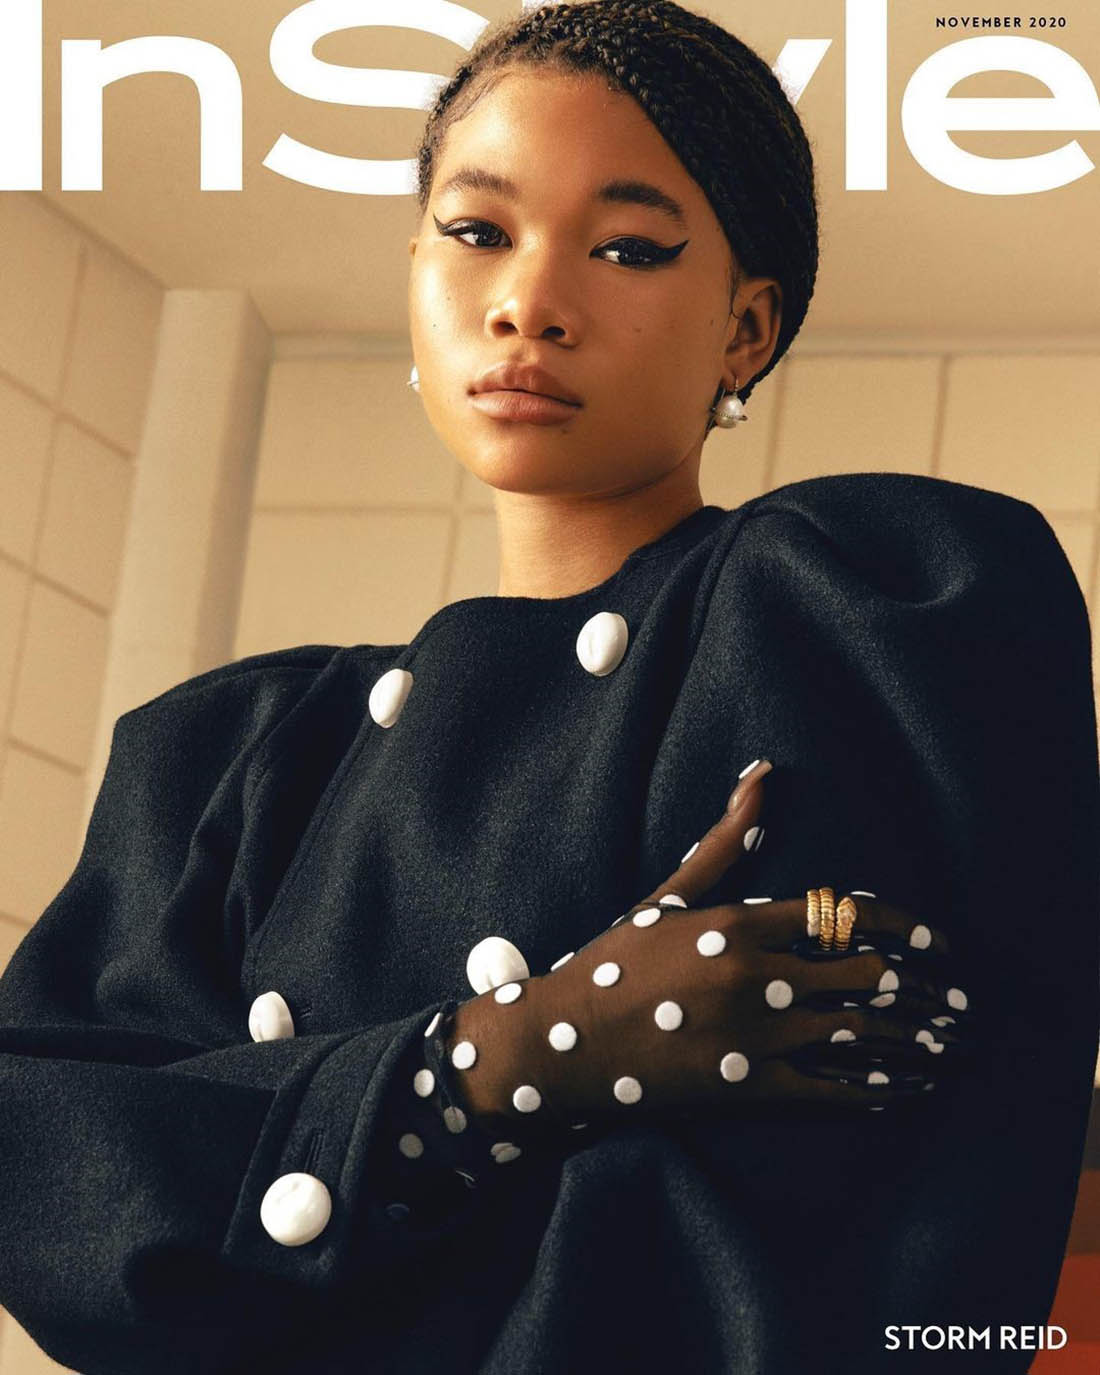 Storm Reid covers InStyle US November 2020 Digital Edition by AB+DM